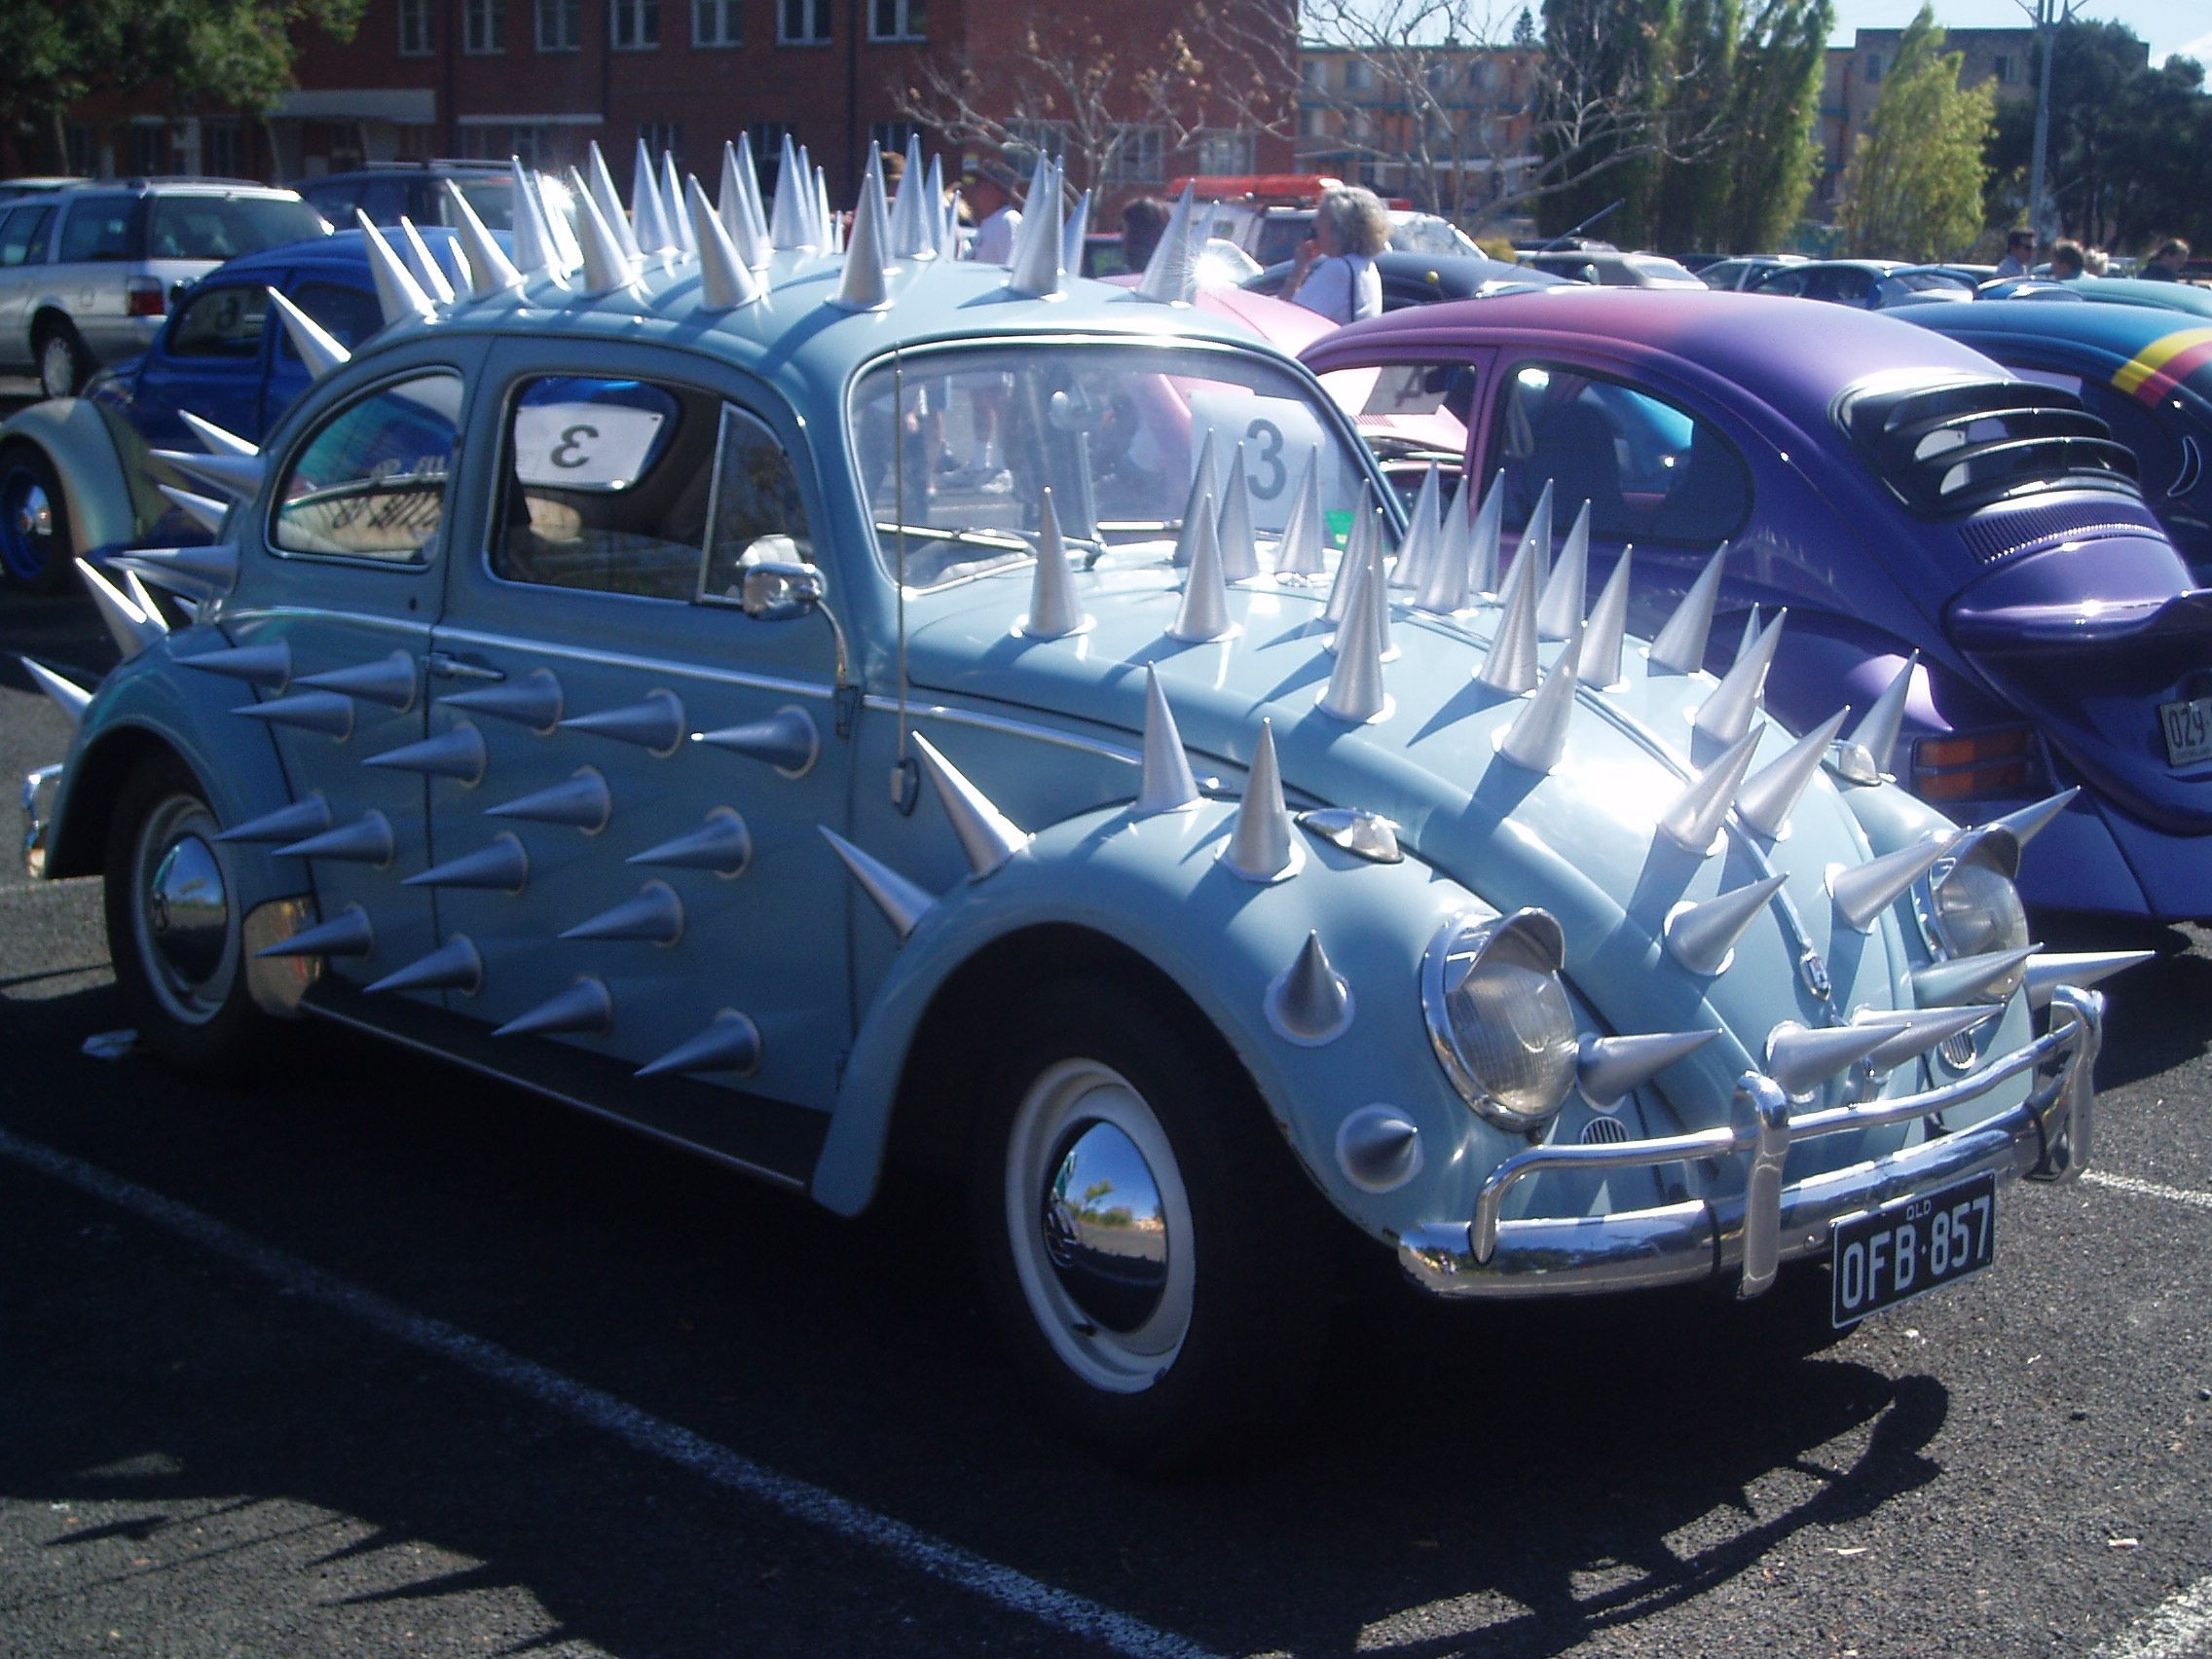 Tiny house bugs car pictures car tuning - Vw Bug Carweird